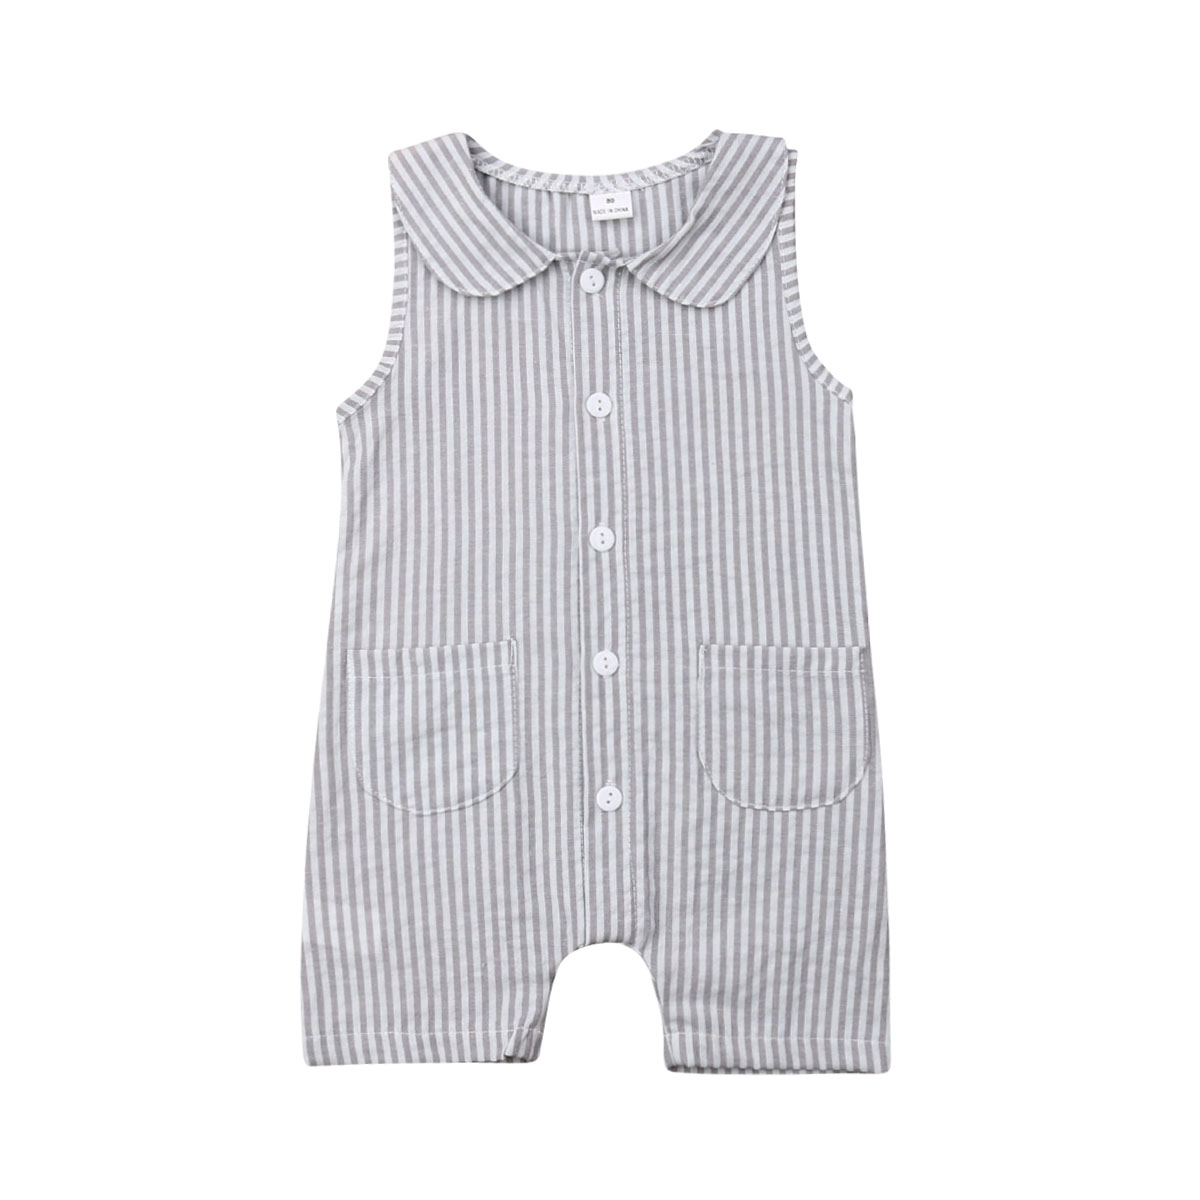 2019 Newest Style Newborn Baby Girls Spring Summer Sleeveless Adorable Romper Jumpsuit Clothes Outfit One Piece 0-24months Quality First